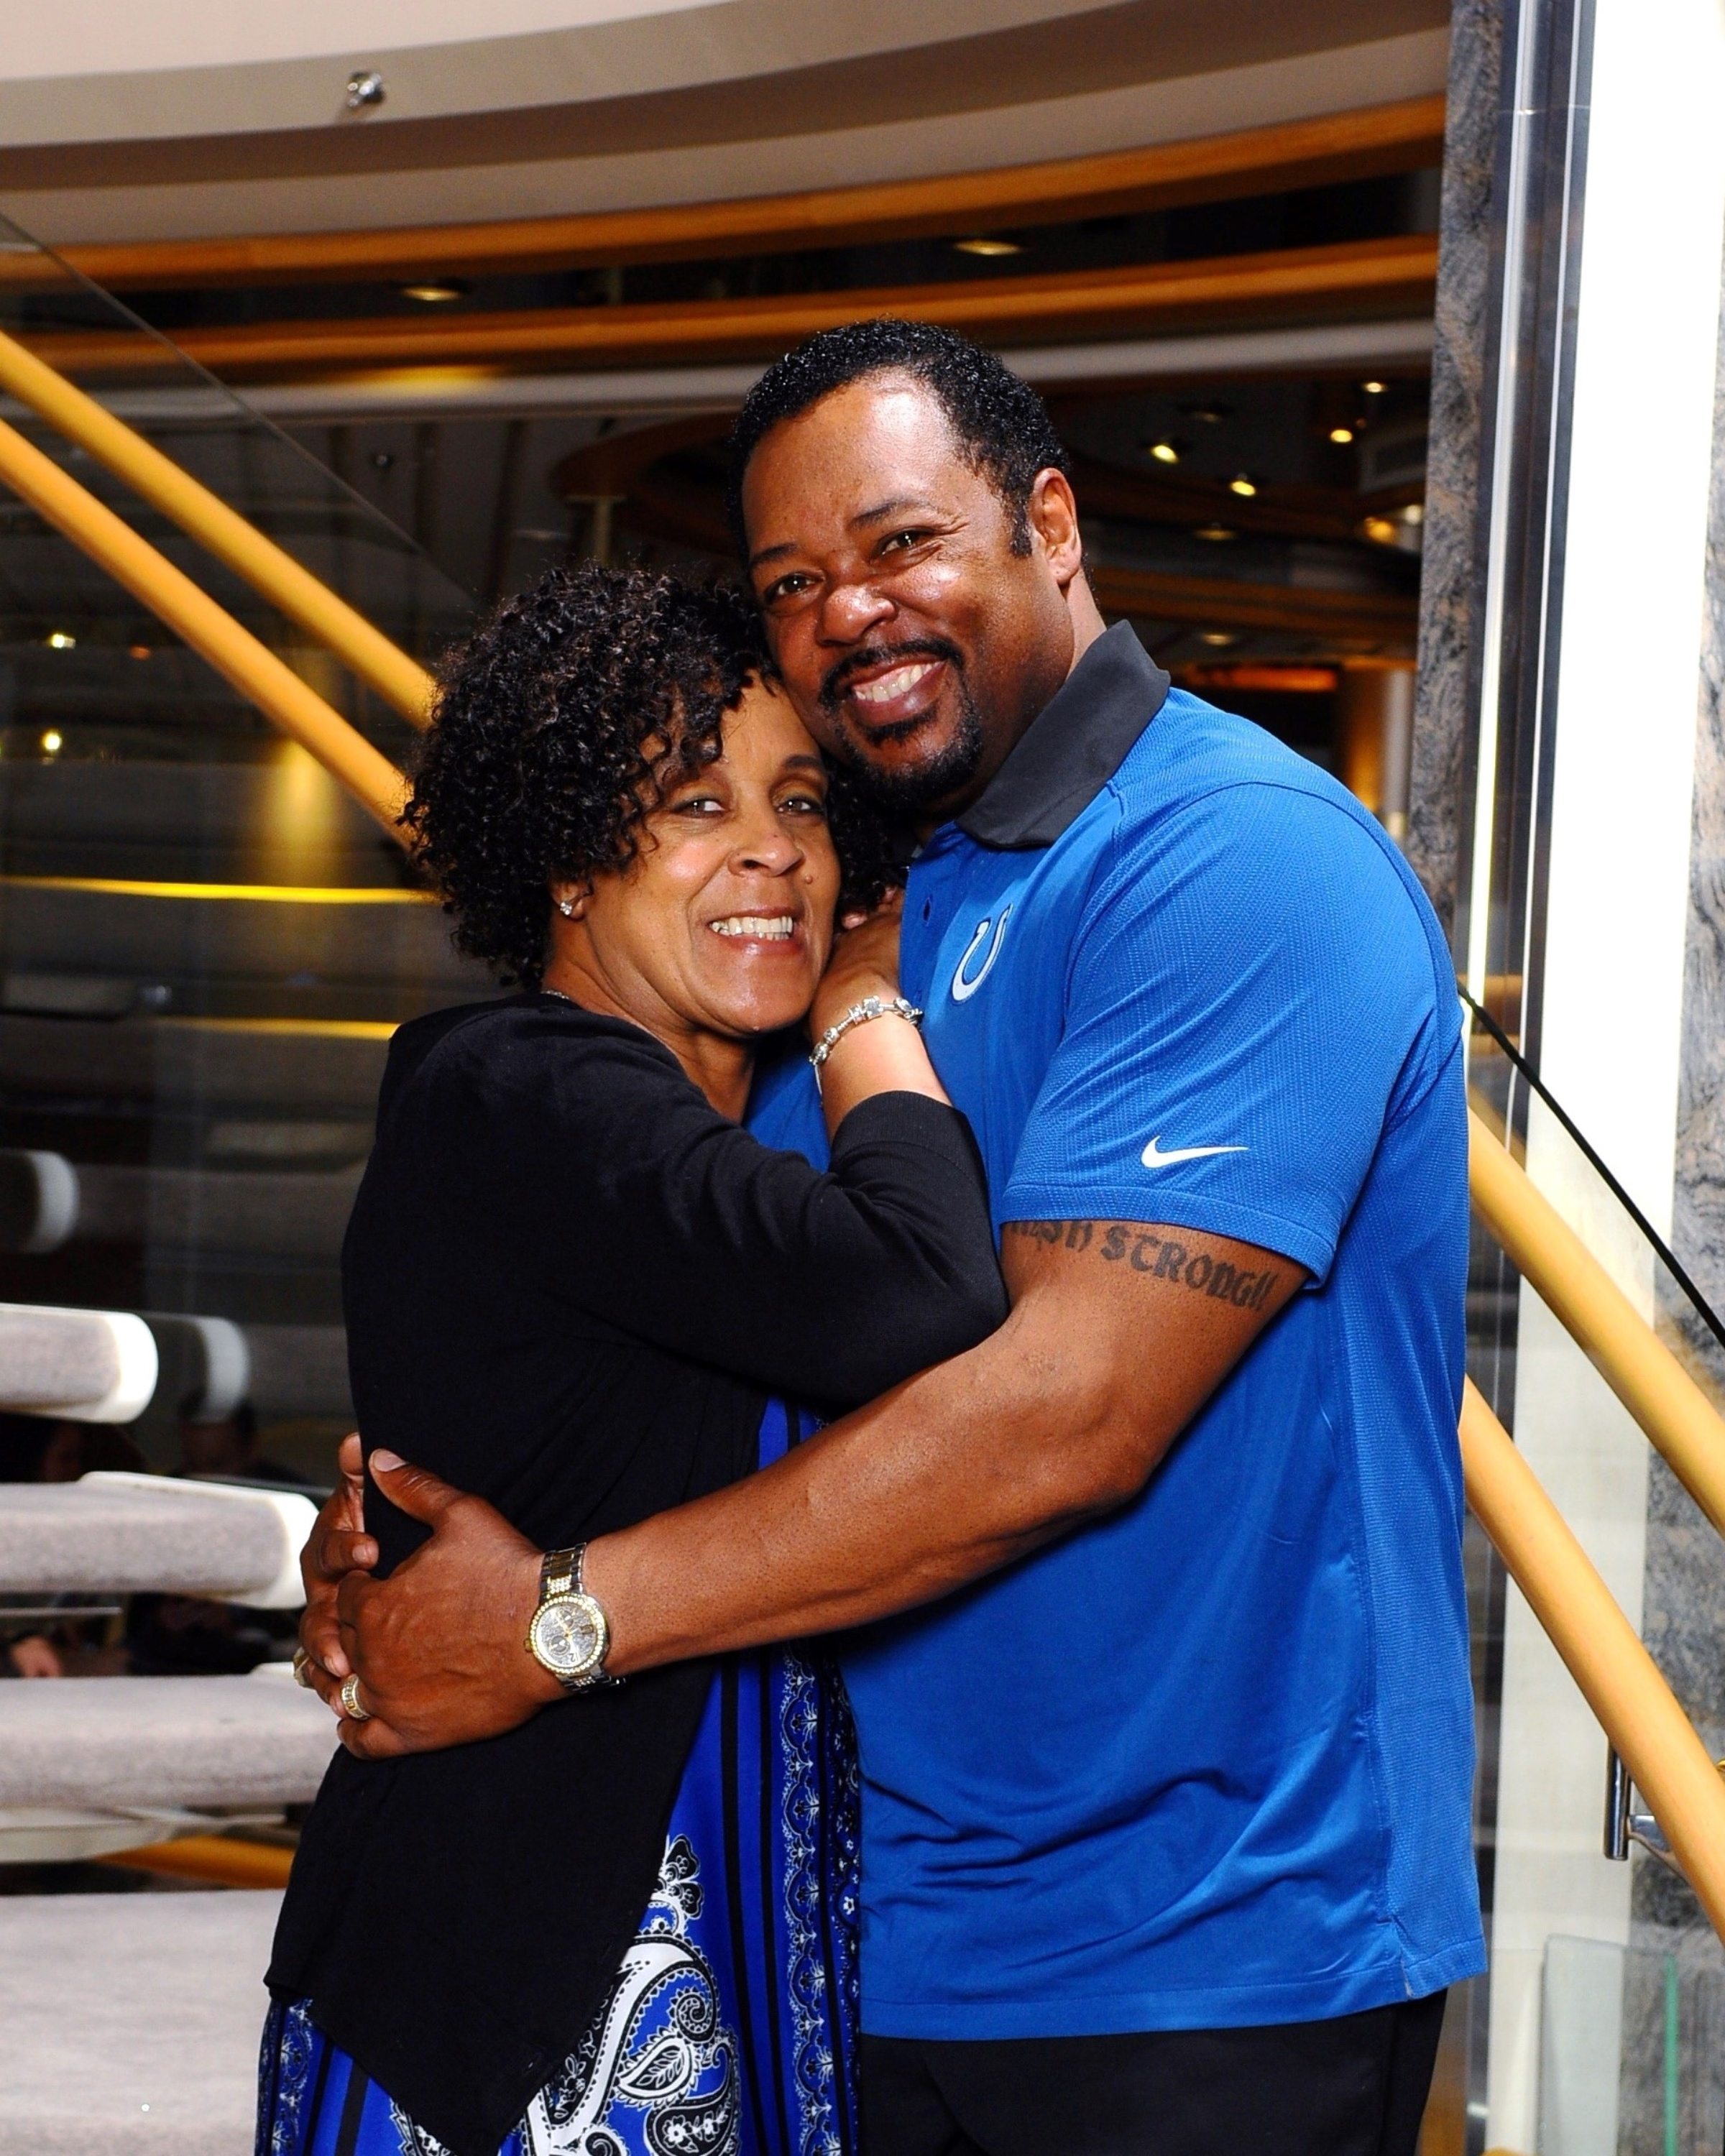 MARRIED 36 YEARS TO AN AMAZING WOMAN! - PASTOR KEN & DELLA JOHNSON